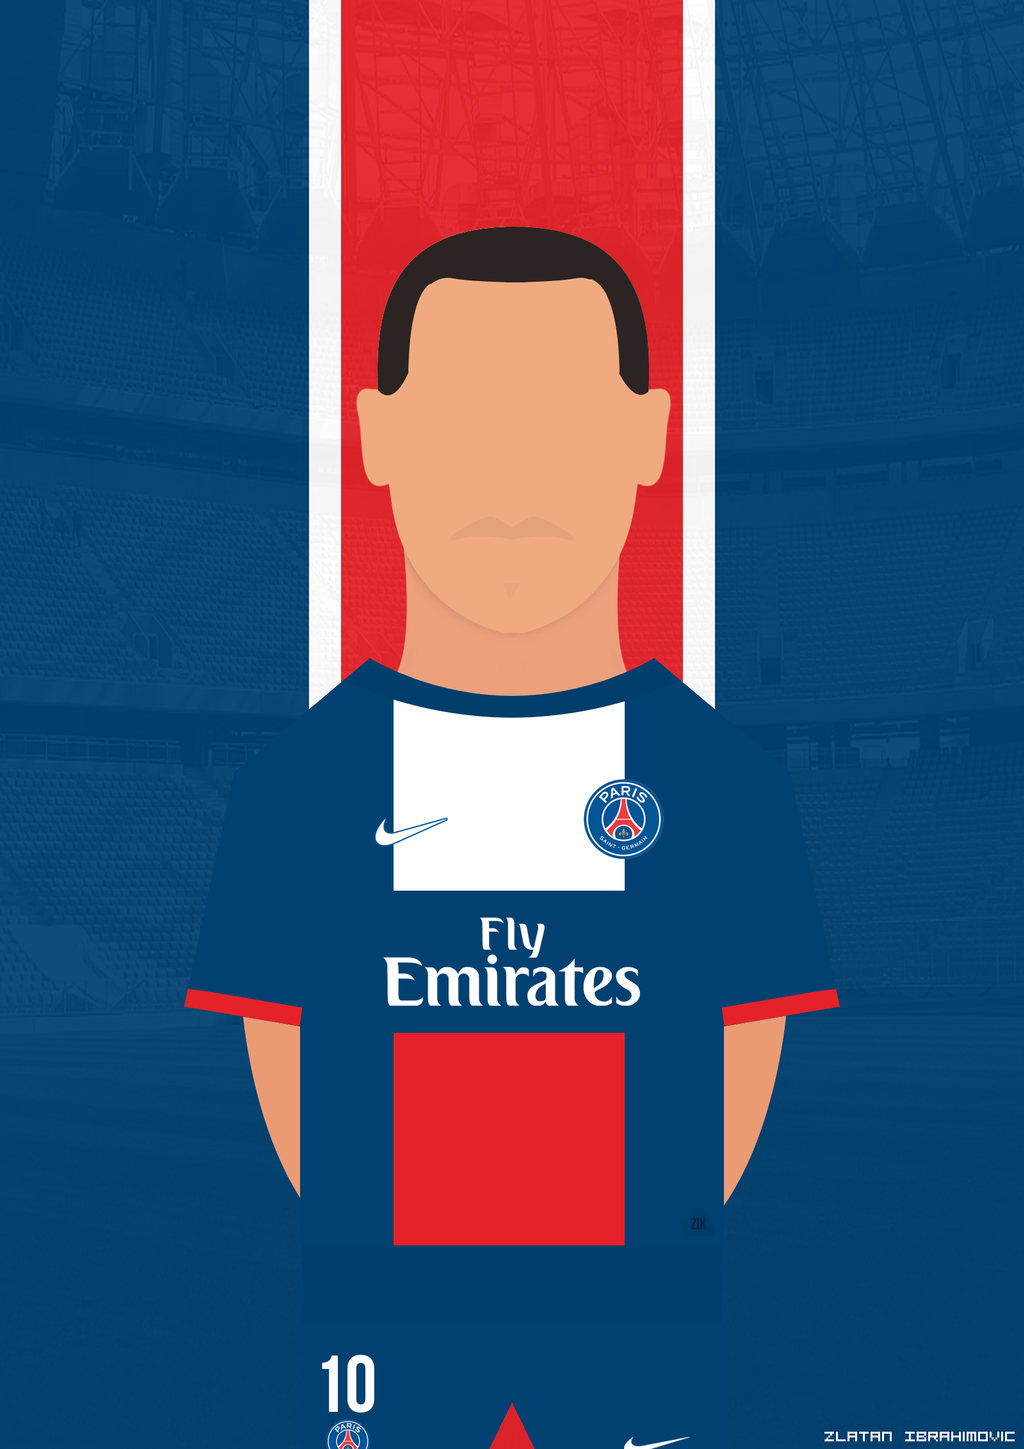 Zlatan Ibrahimovic Psg By Zikdesign On Deviantart